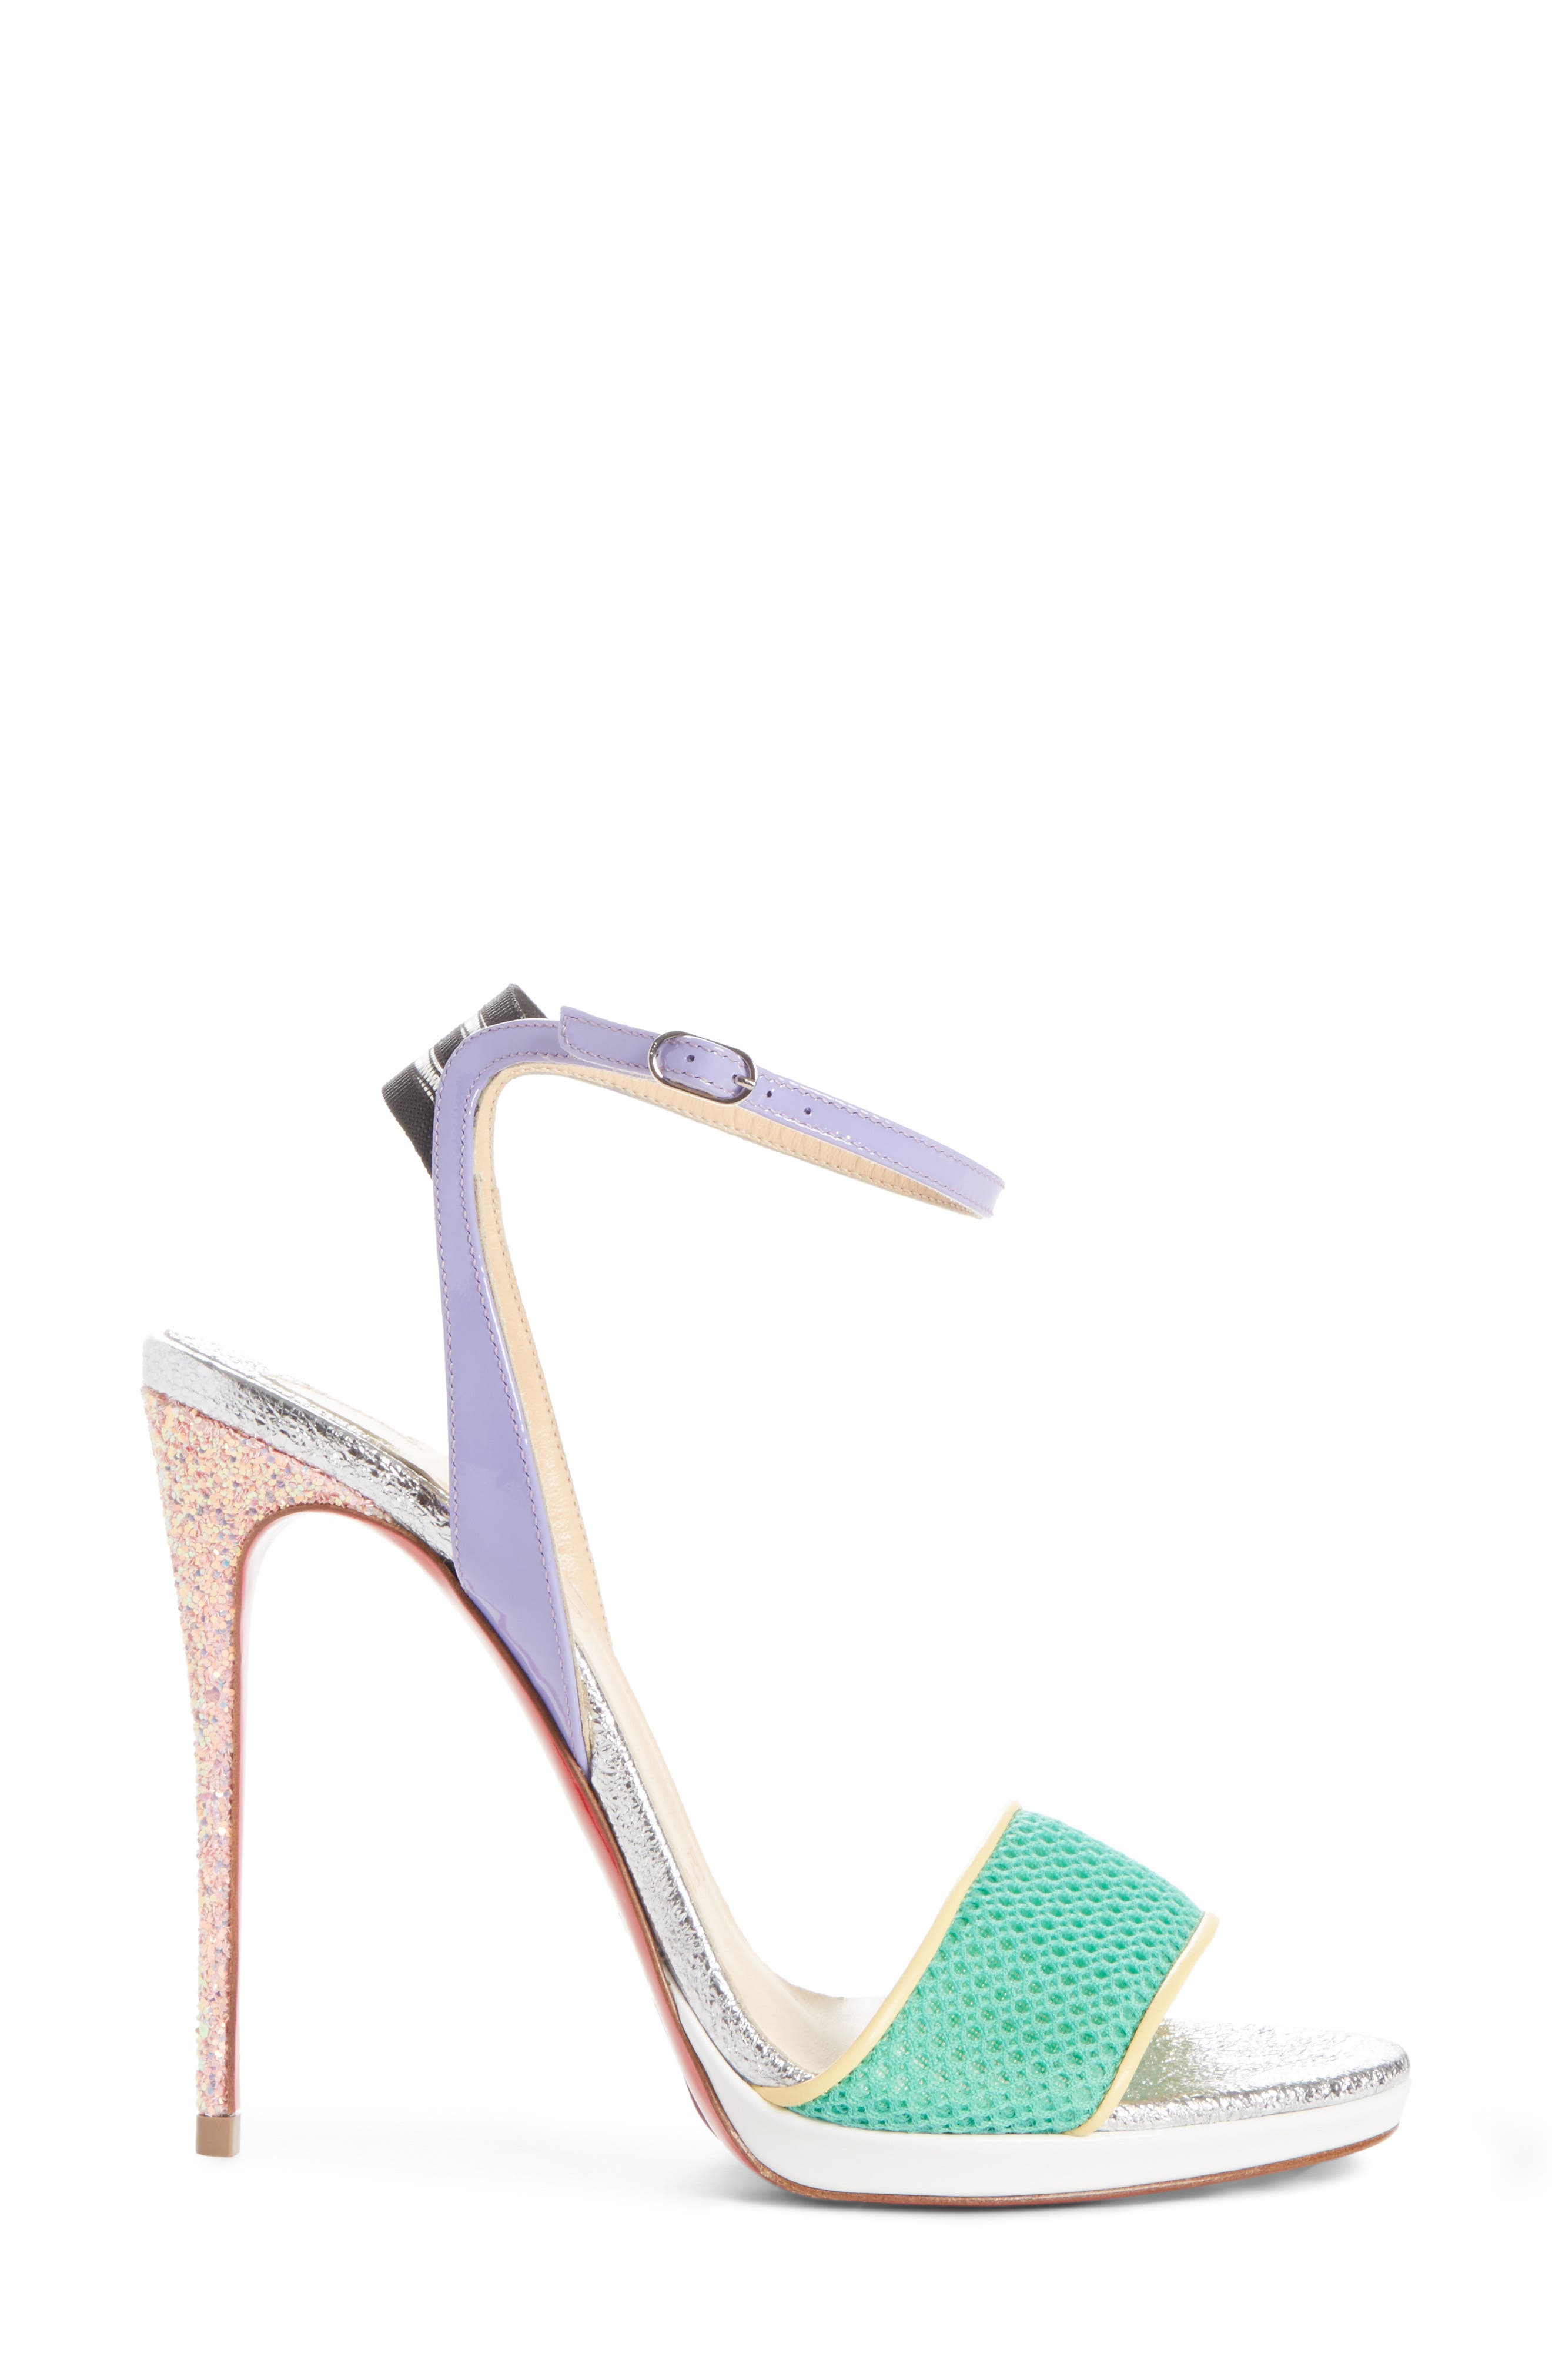 Alternate Image 3  - Christian Louboutin Discoport Textured Sandal (Women)